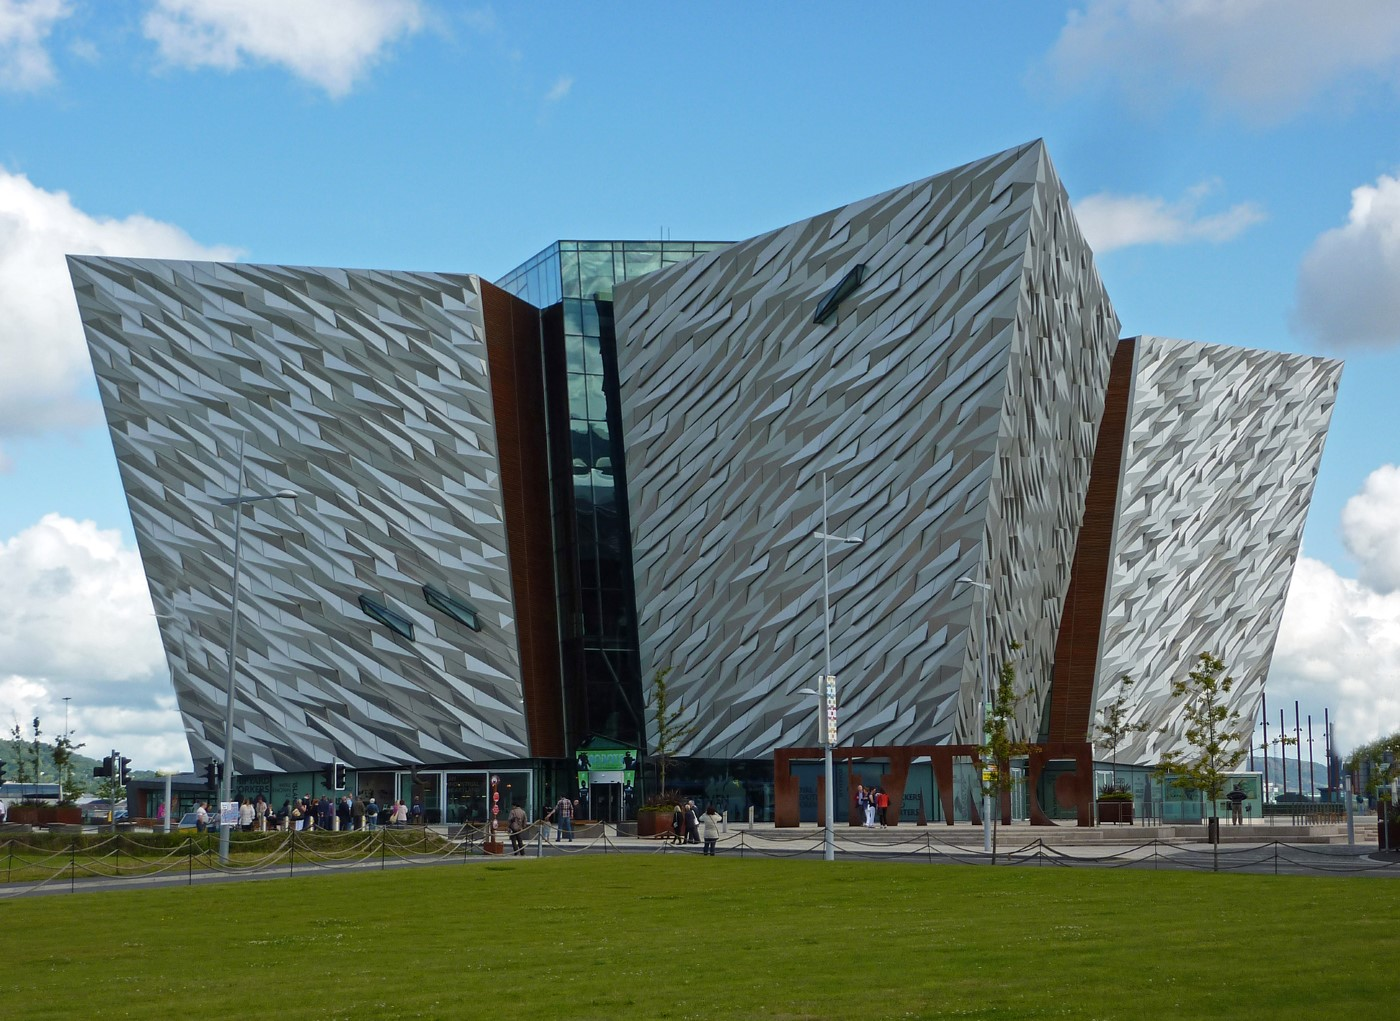 TITANIC MUSEUM by Jim Chown